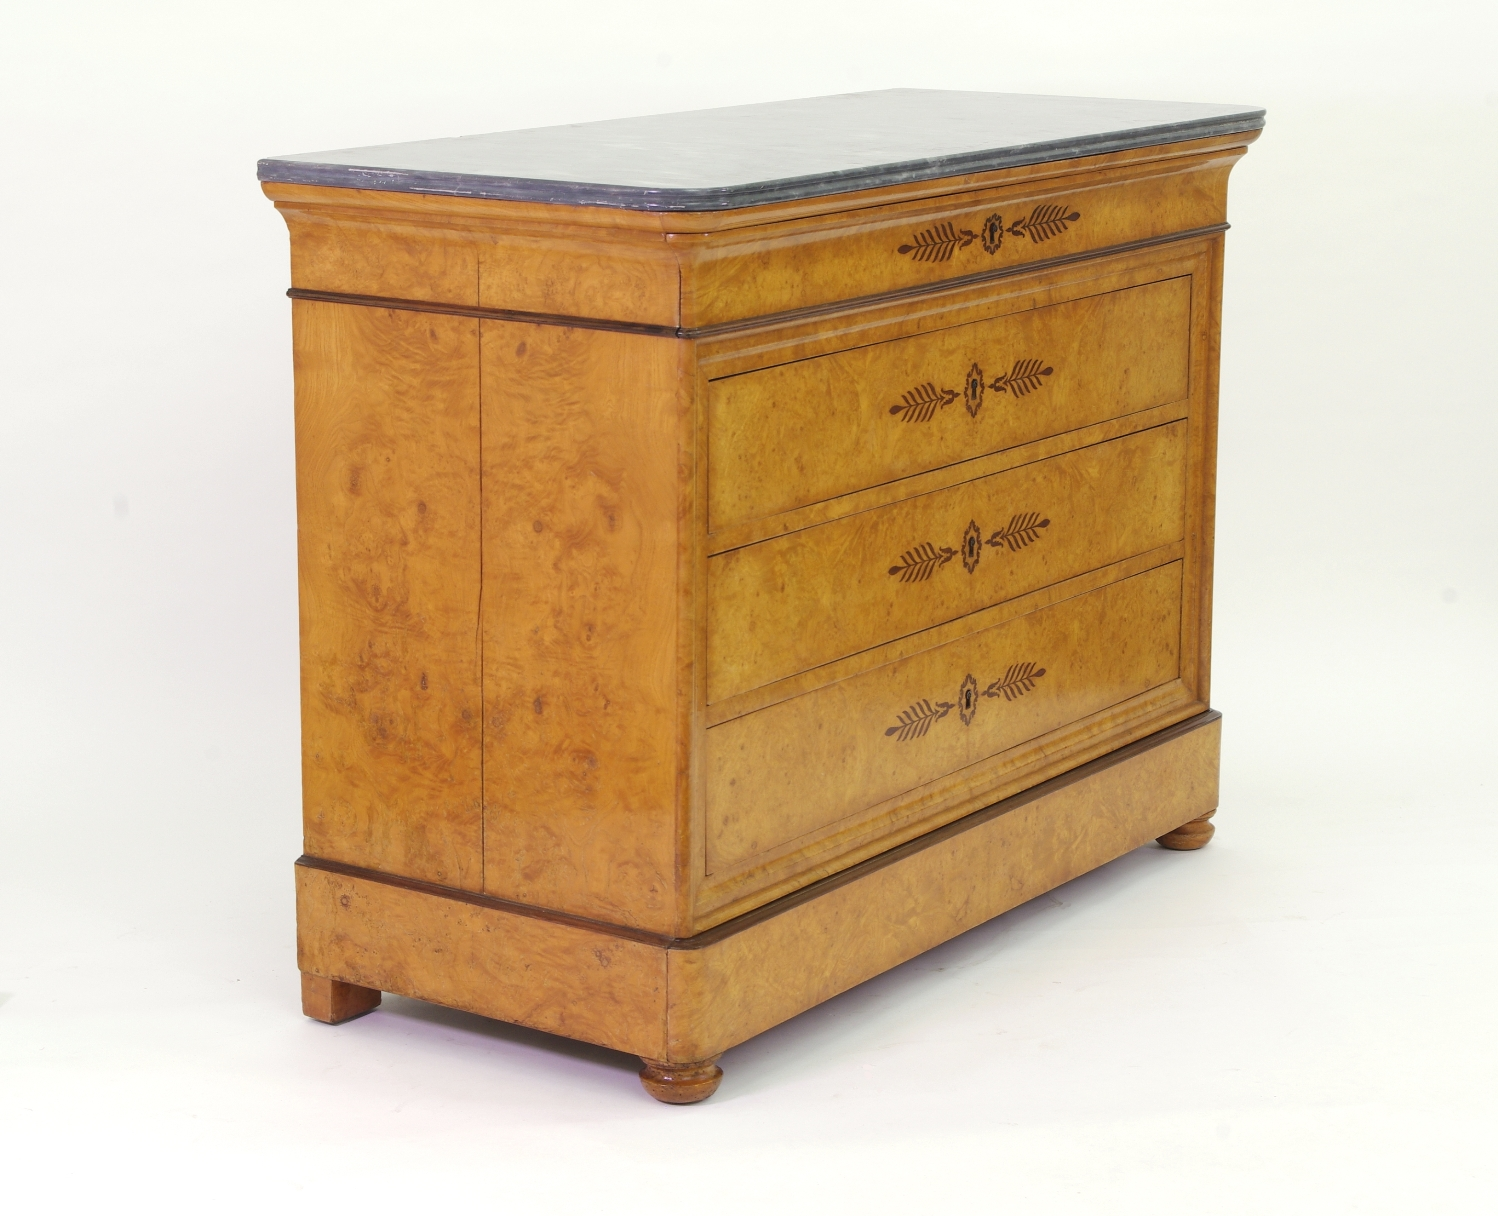 View 4: French Restauration Burr Ash Chest of Drawers, c. 1825